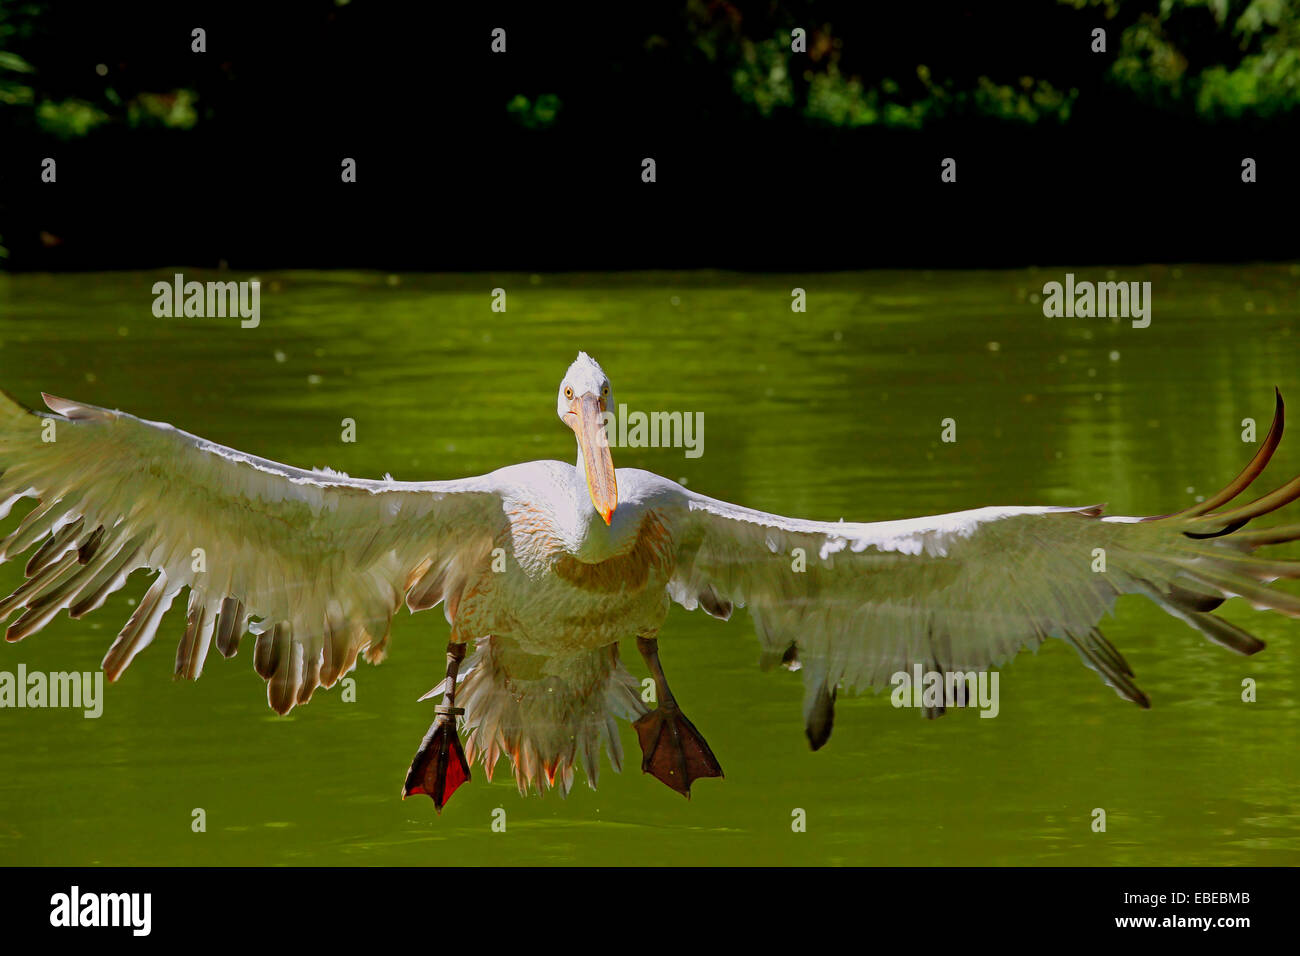 Dalmatian Pelican (Pelecanus crispus)  in flight just prior to landing Stock Photo